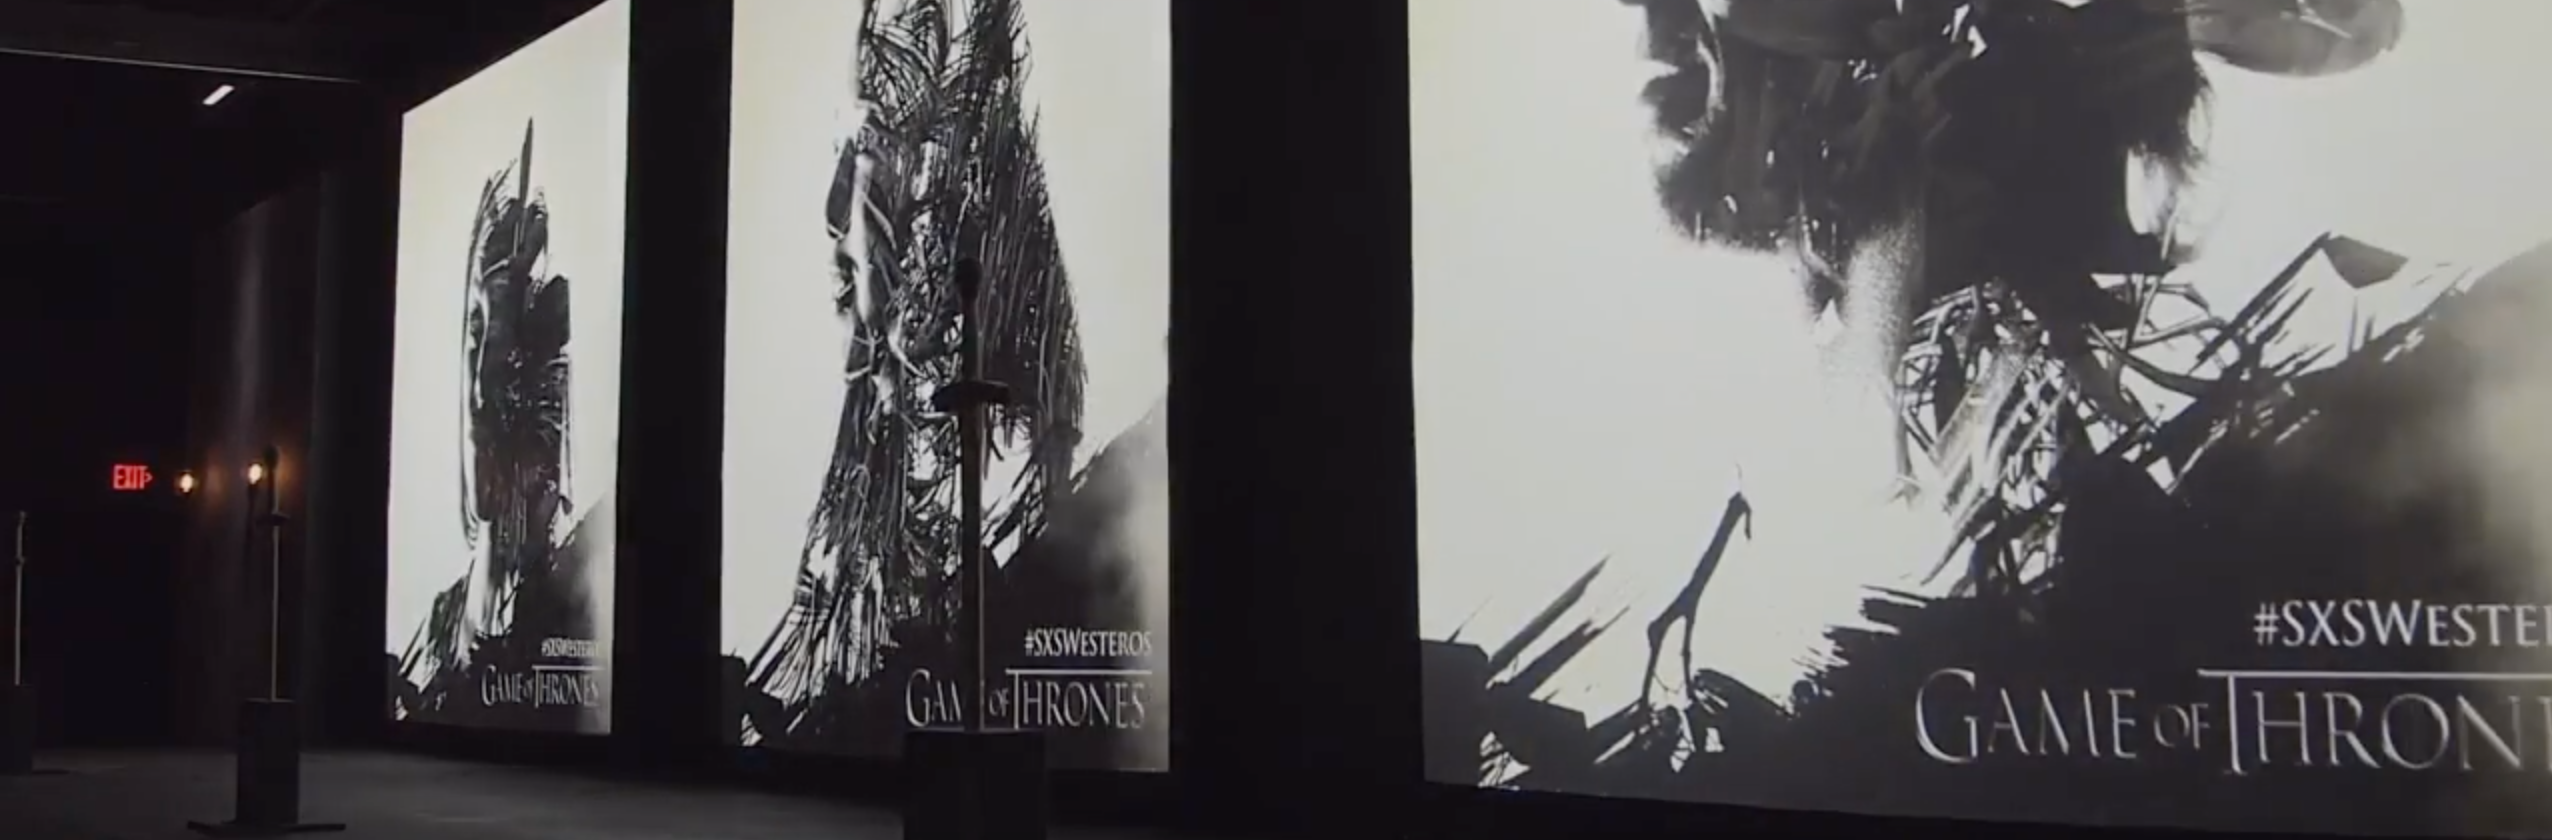 Three-Screen Projection Display for Game of Thrones Event